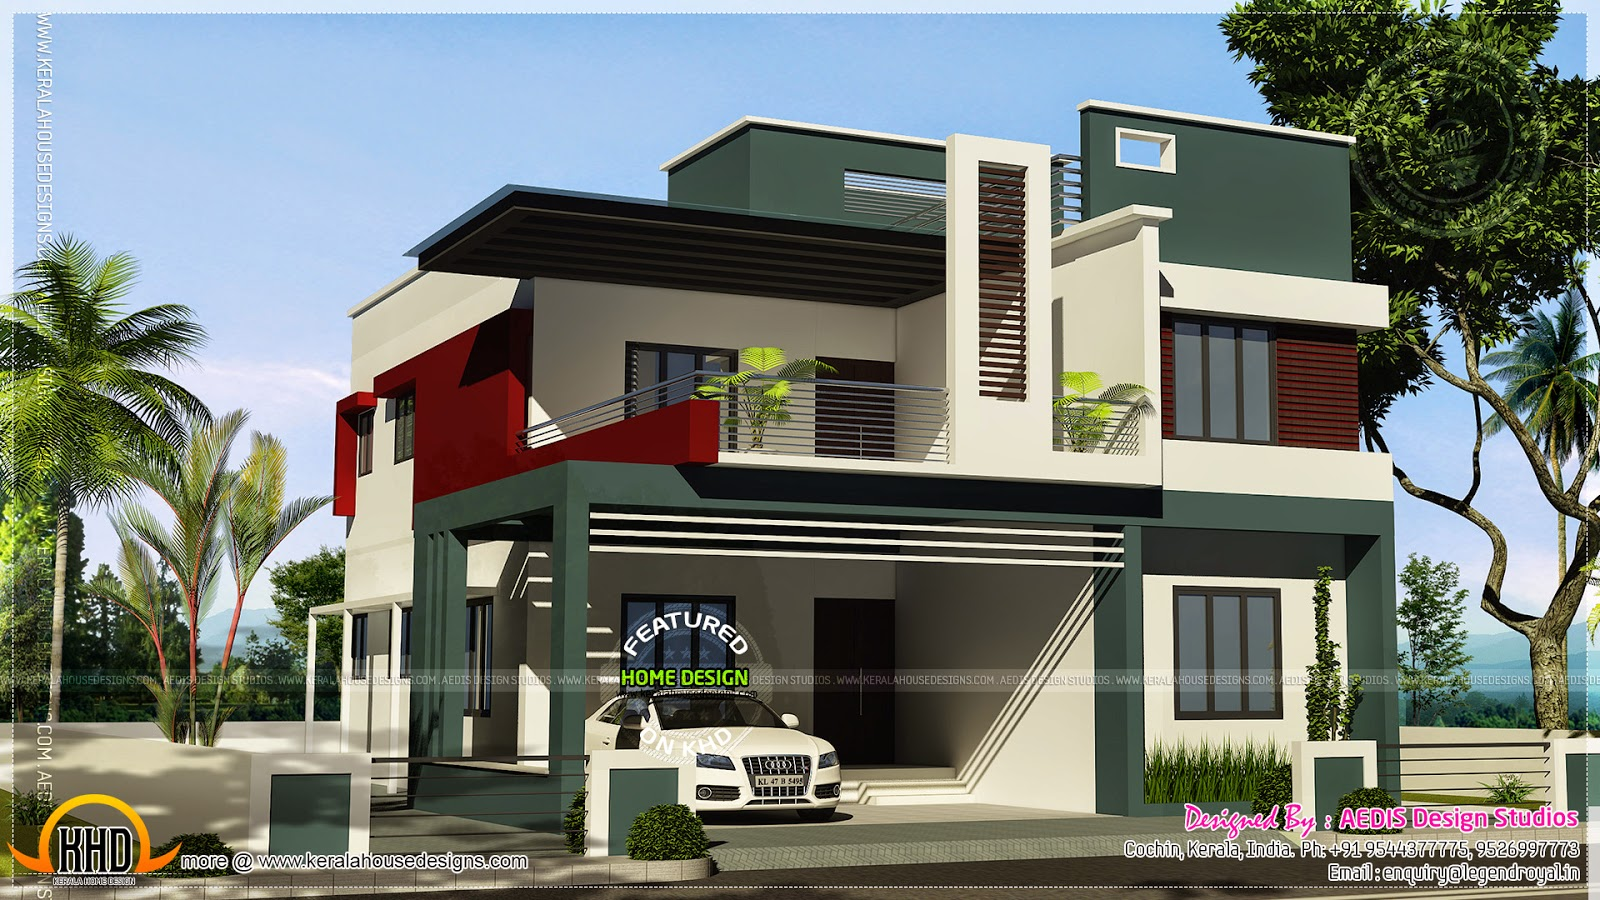 Duplex house plans south indian style home photo style for South indian small house designs